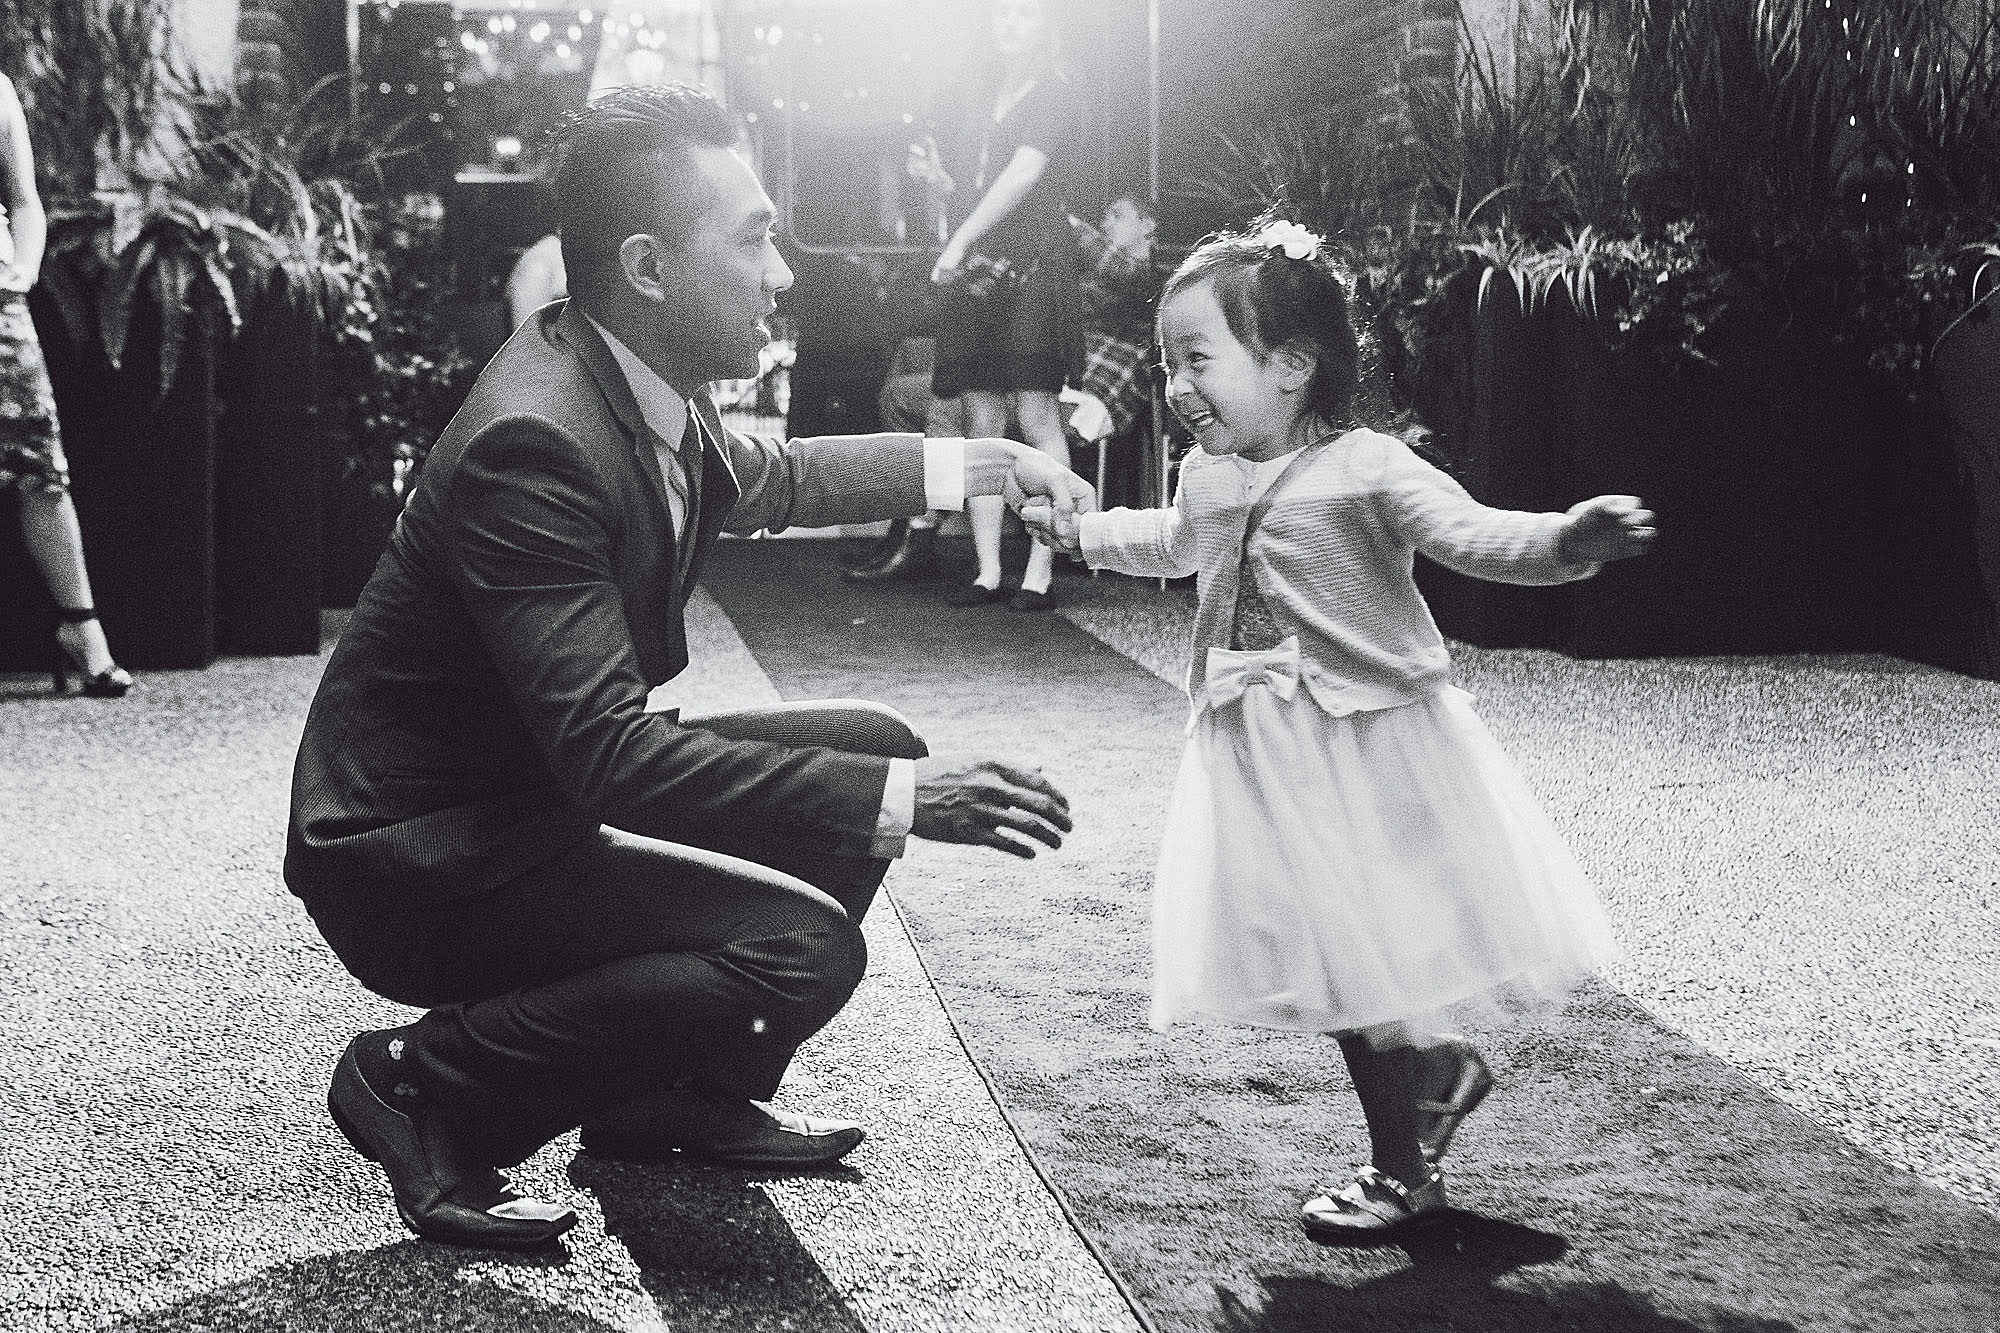 Father dancing with his daughter at a wedding